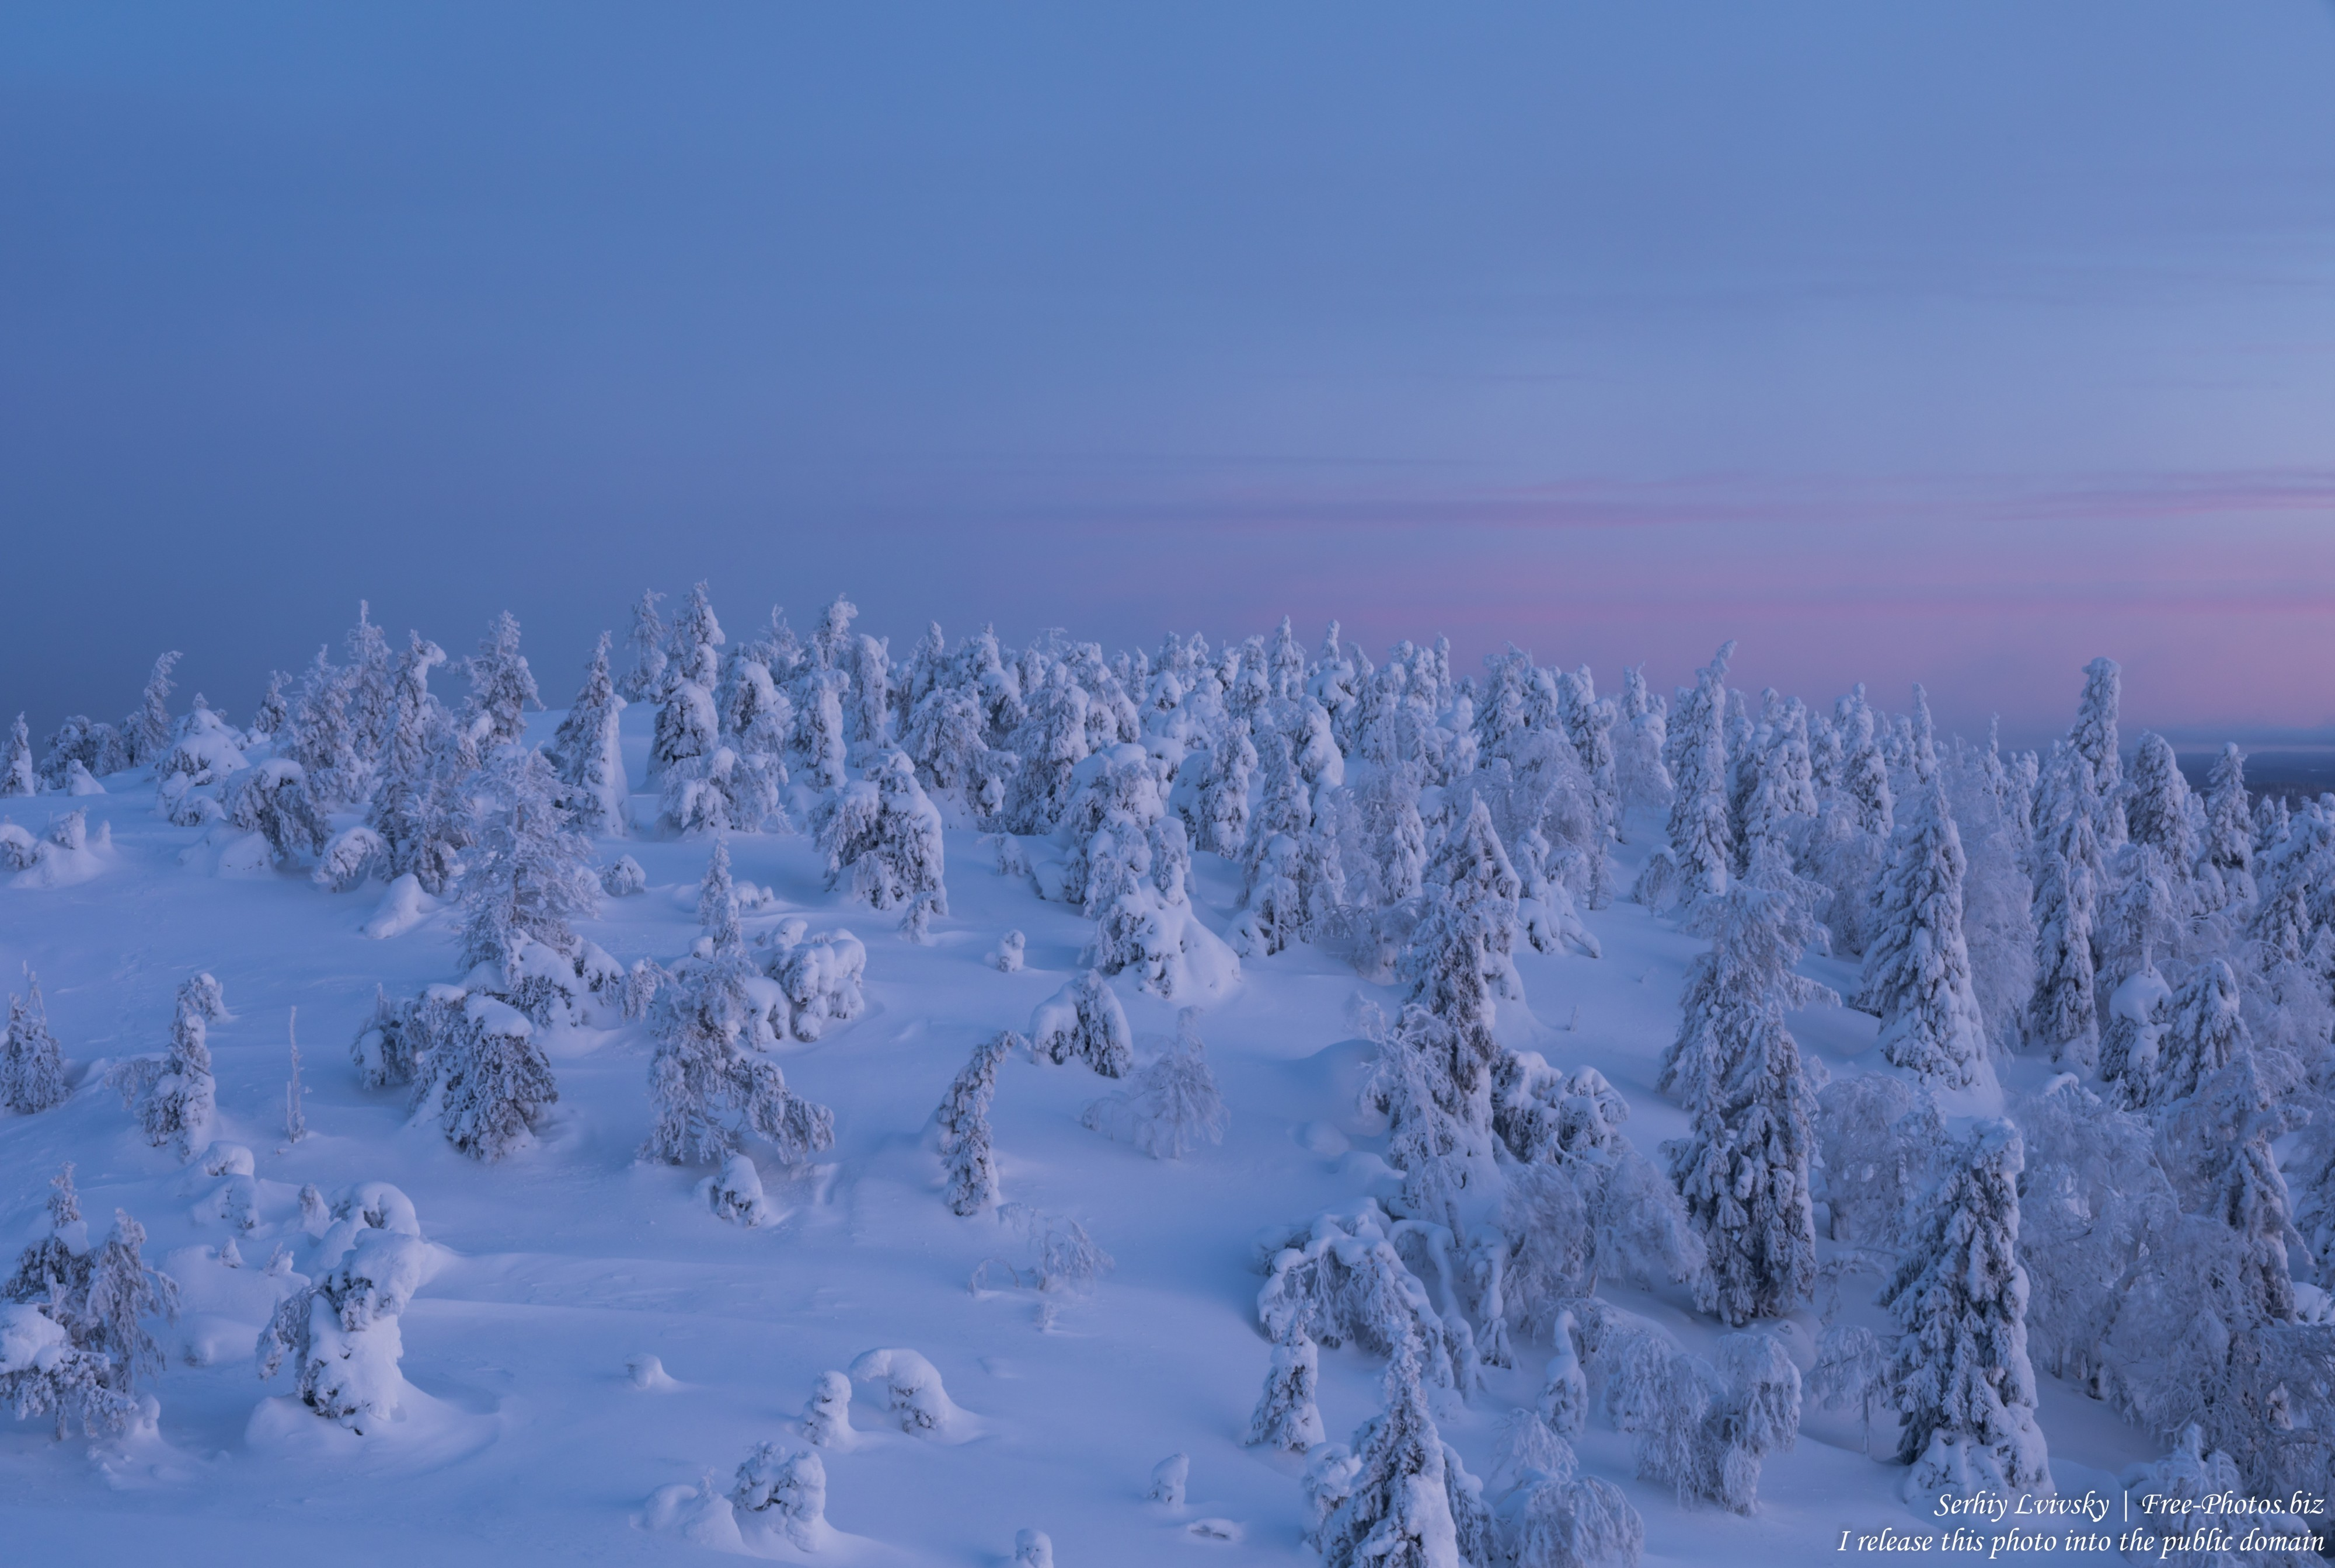 Valtavaara, Finland, photographed in January 2020 by Serhiy Lvivsky, picture 54